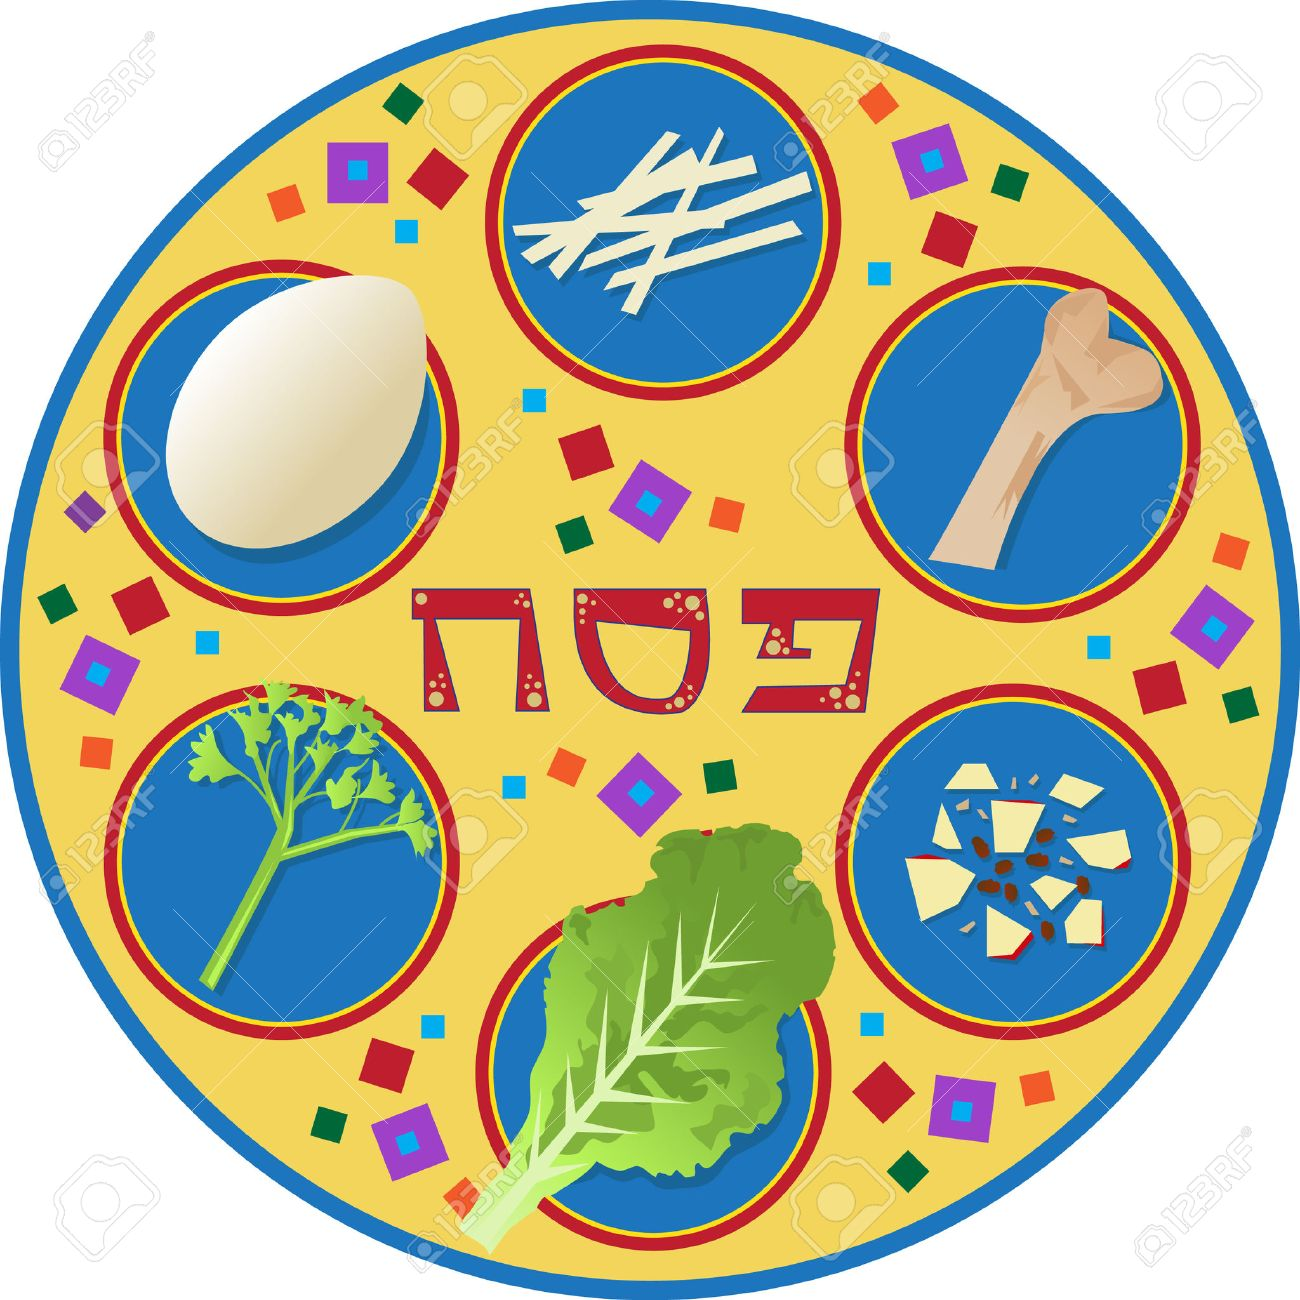 Passover Plate Passover Plate And Its Symbols With The Word